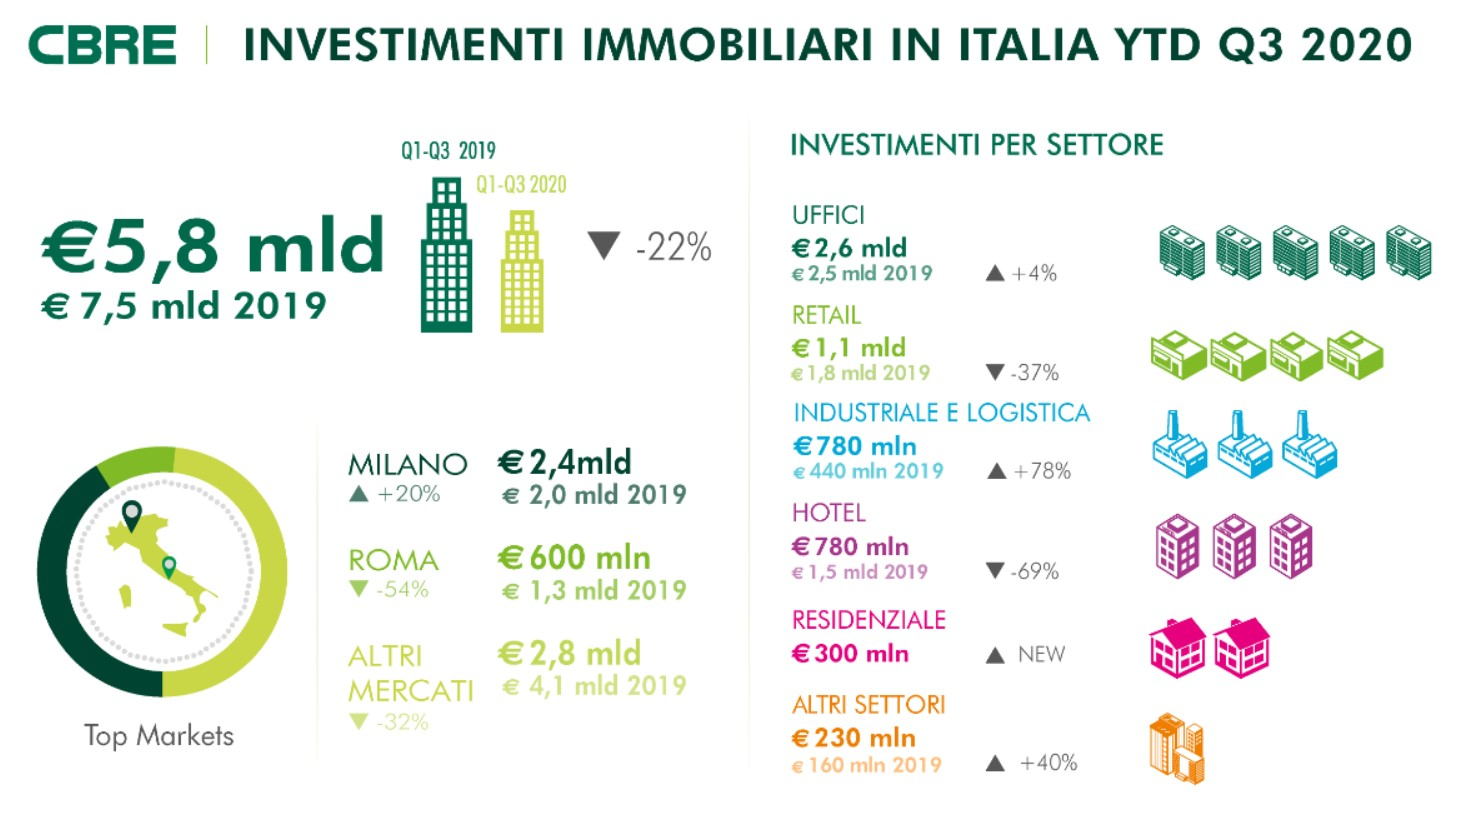 Commercial Real Estate: uffici core e logistica guidano il mercato